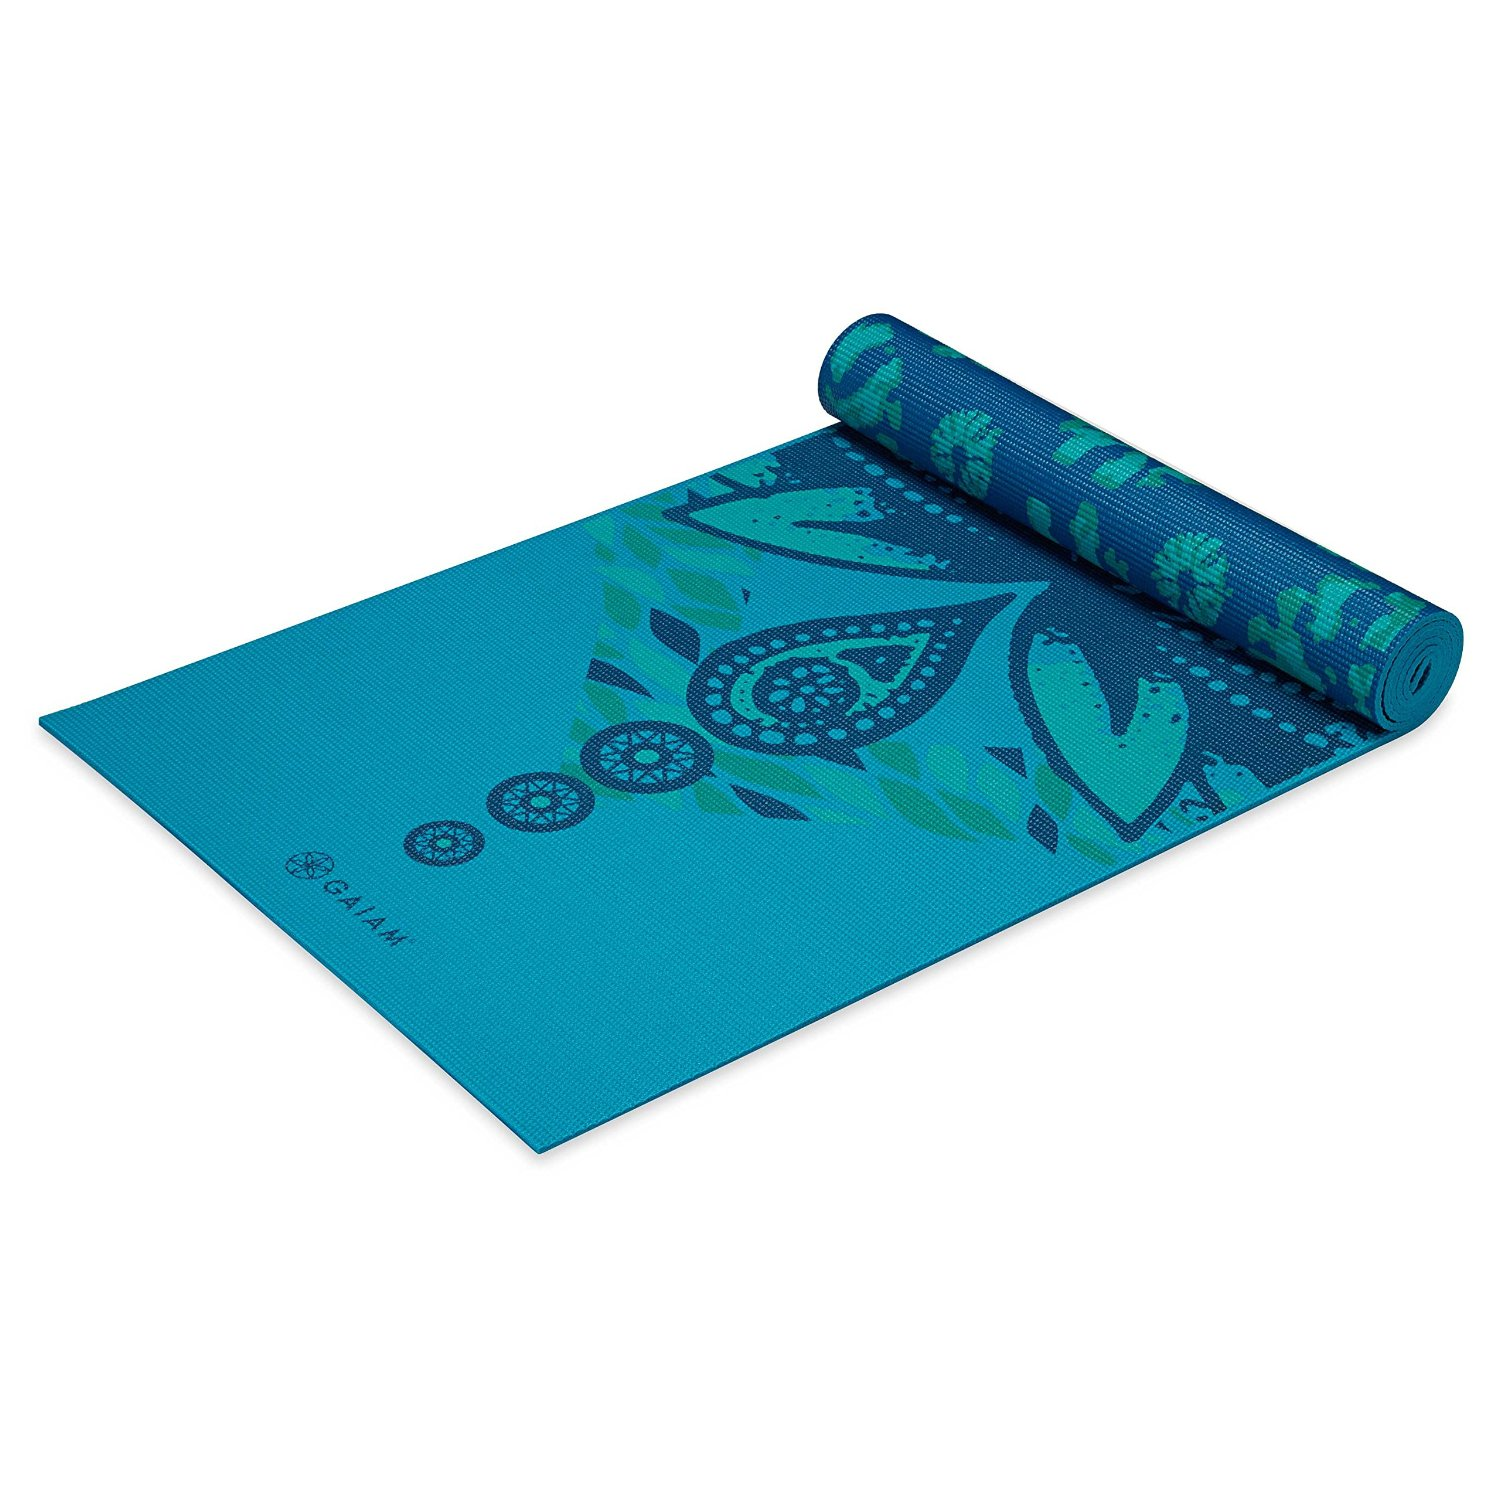 gaiam print premium reversable yoga mats 5mm reflection